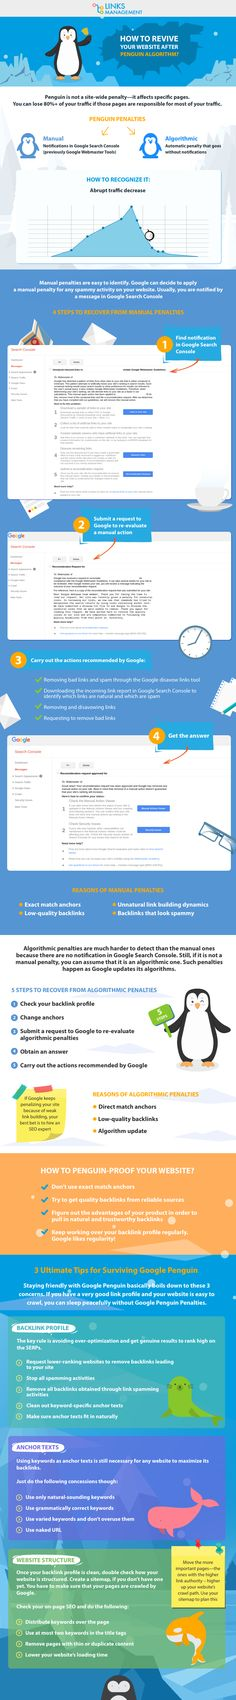 Infographics on how to revive website after Penguin Google SERP Algorithm Penalty. #seo #infographic #googleupdate